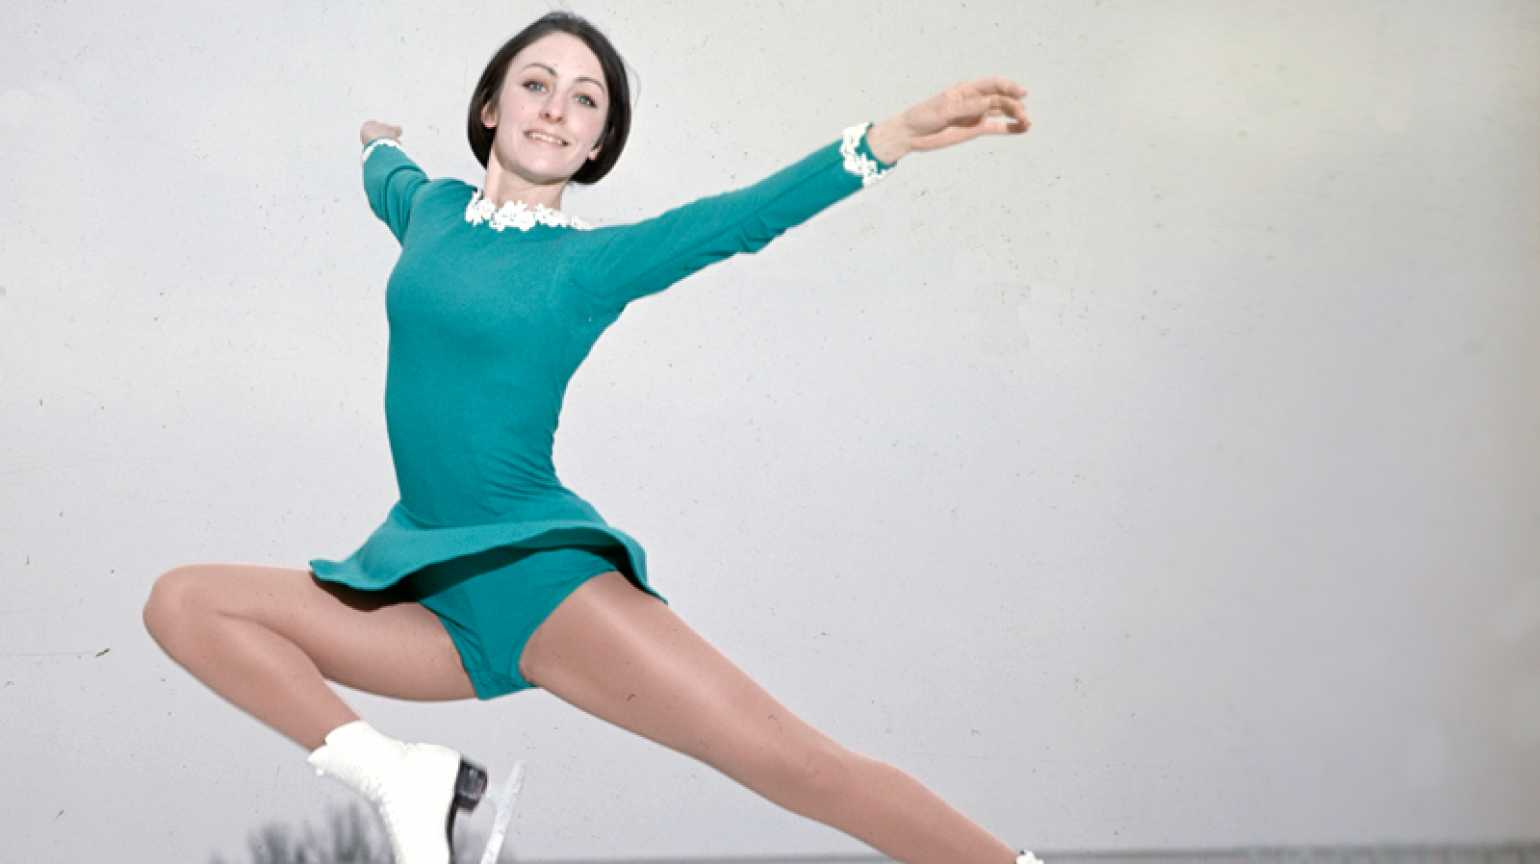 Peggy Fleming Performs On The Ice.